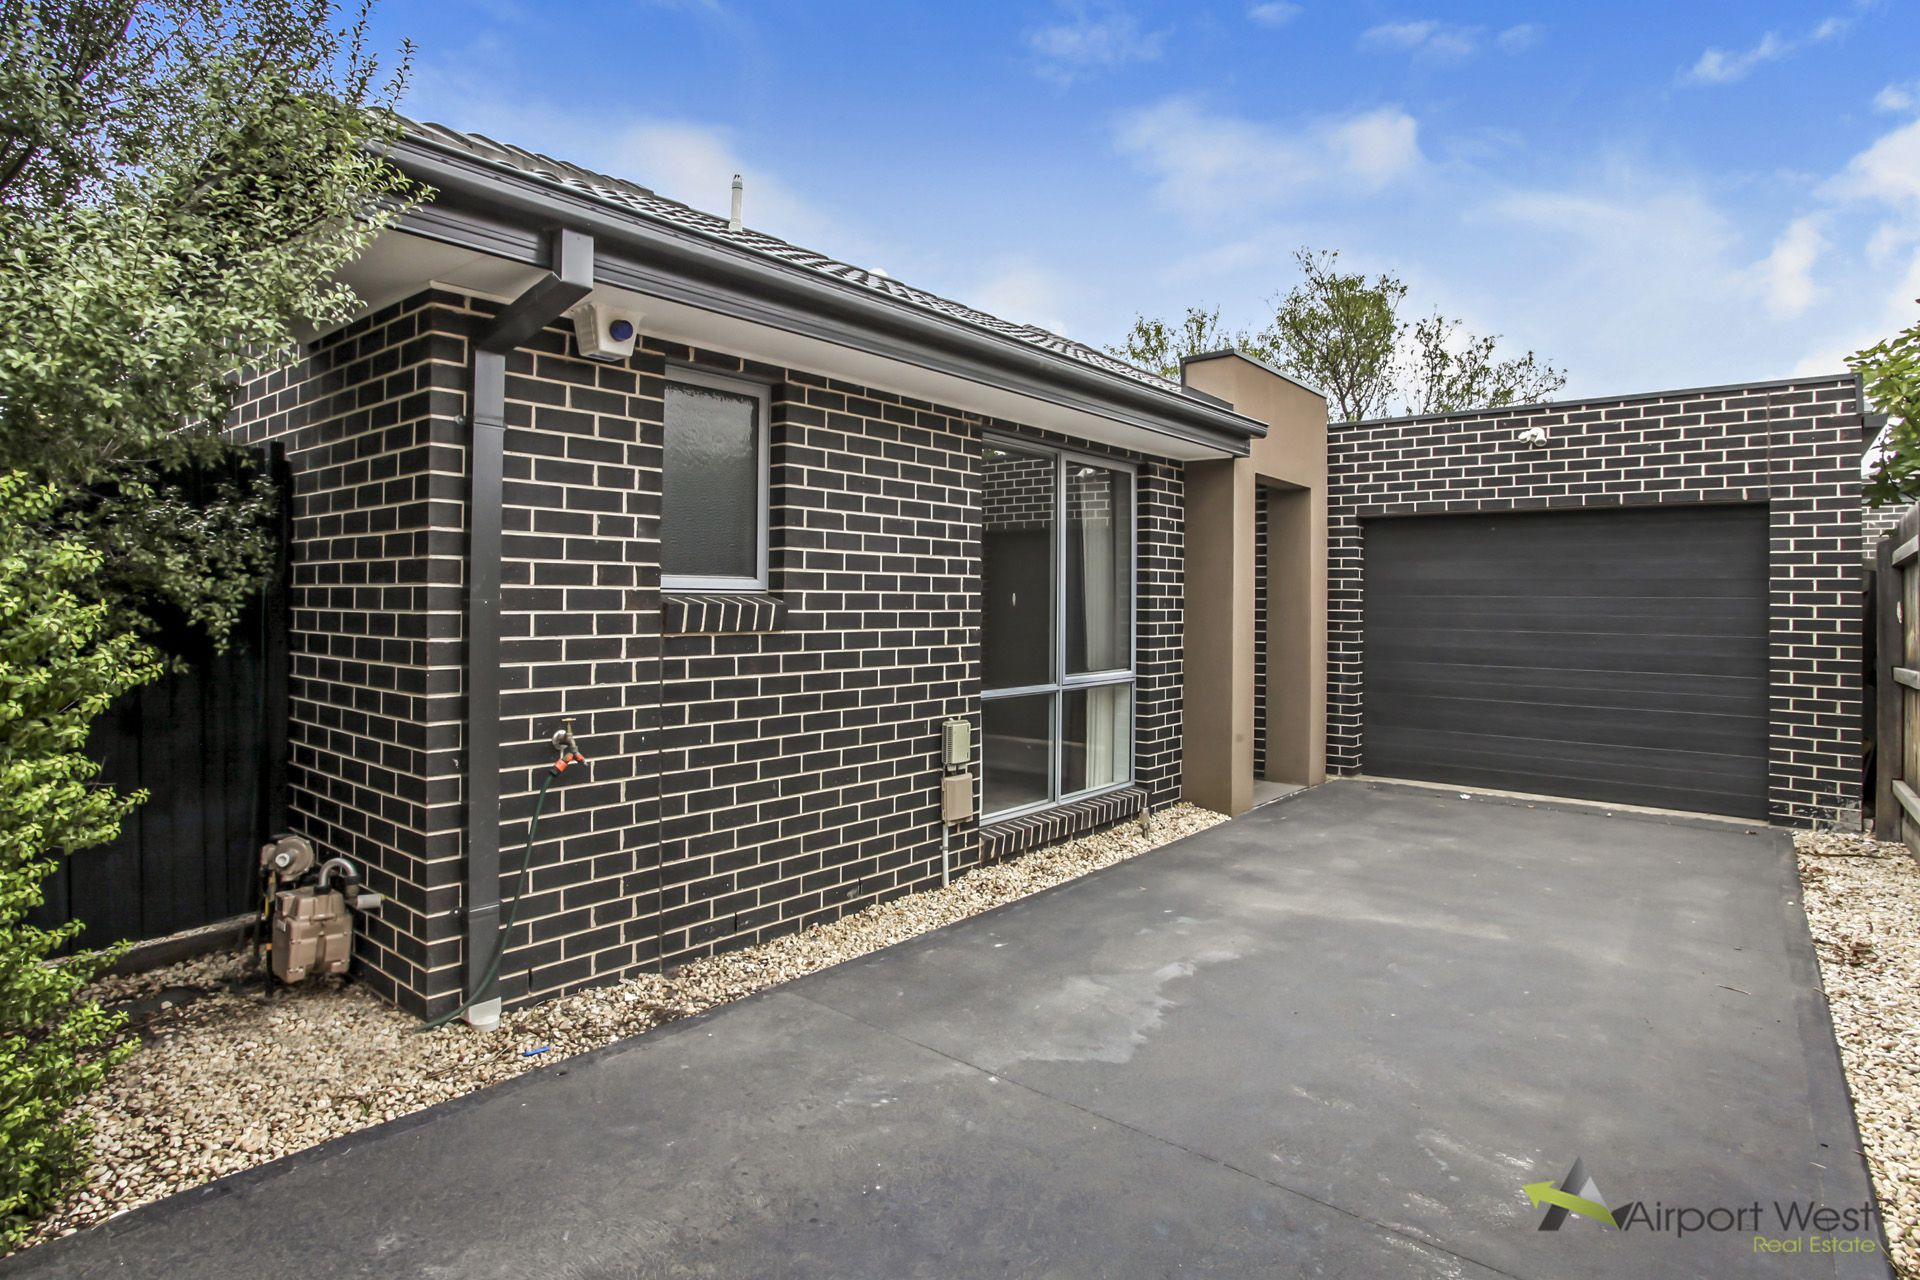 71B McIntosh Street, Airport West